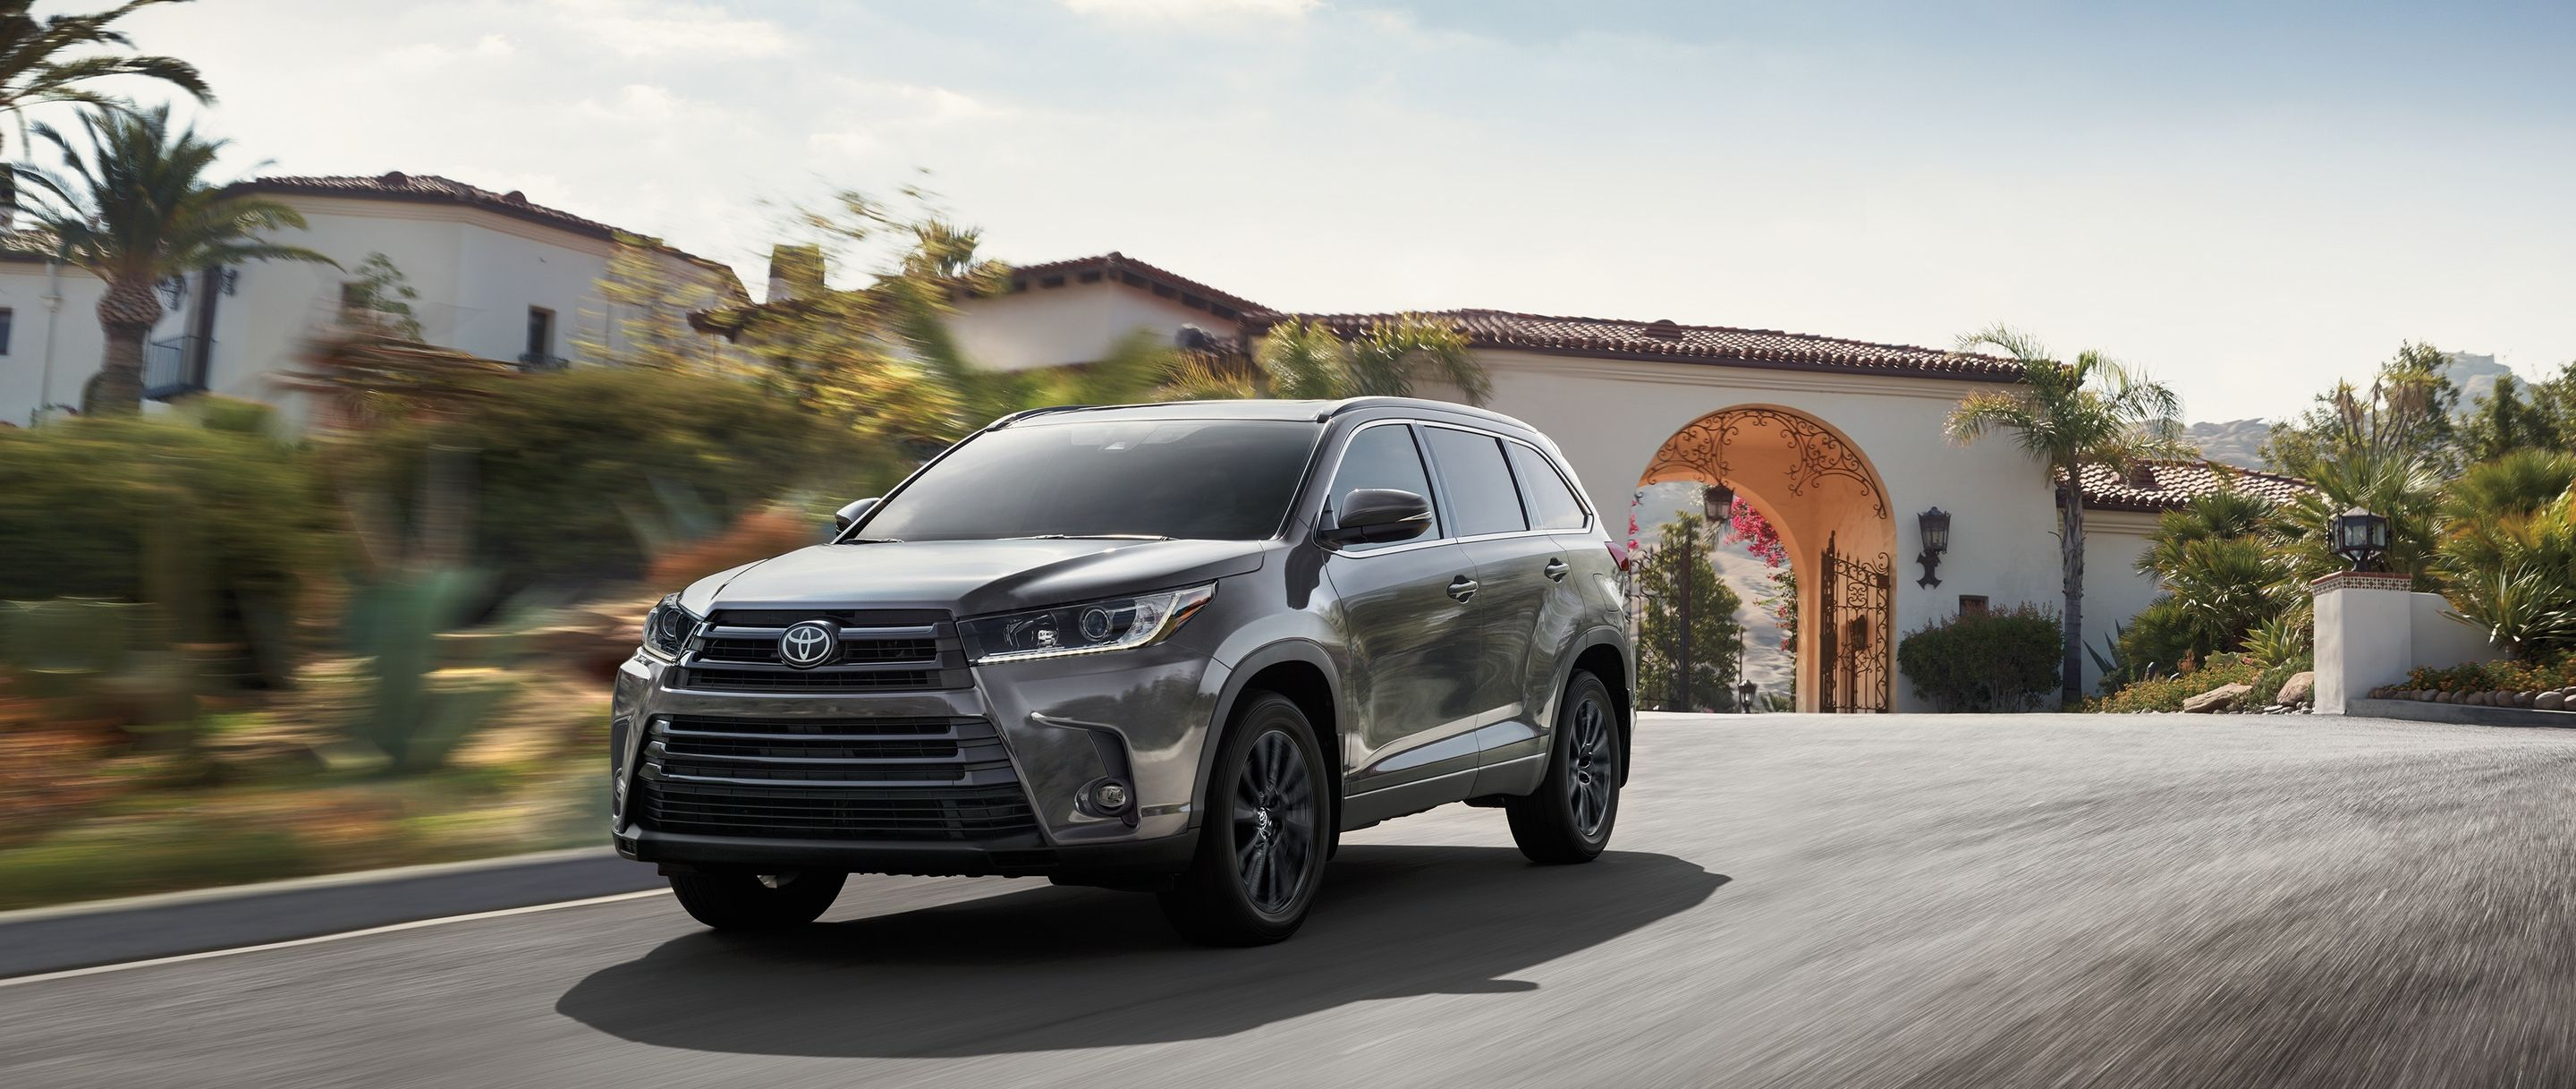 Toyota Highlander Lease >> 2019 Toyota Highlander Leasing Toyota Of Greenwich